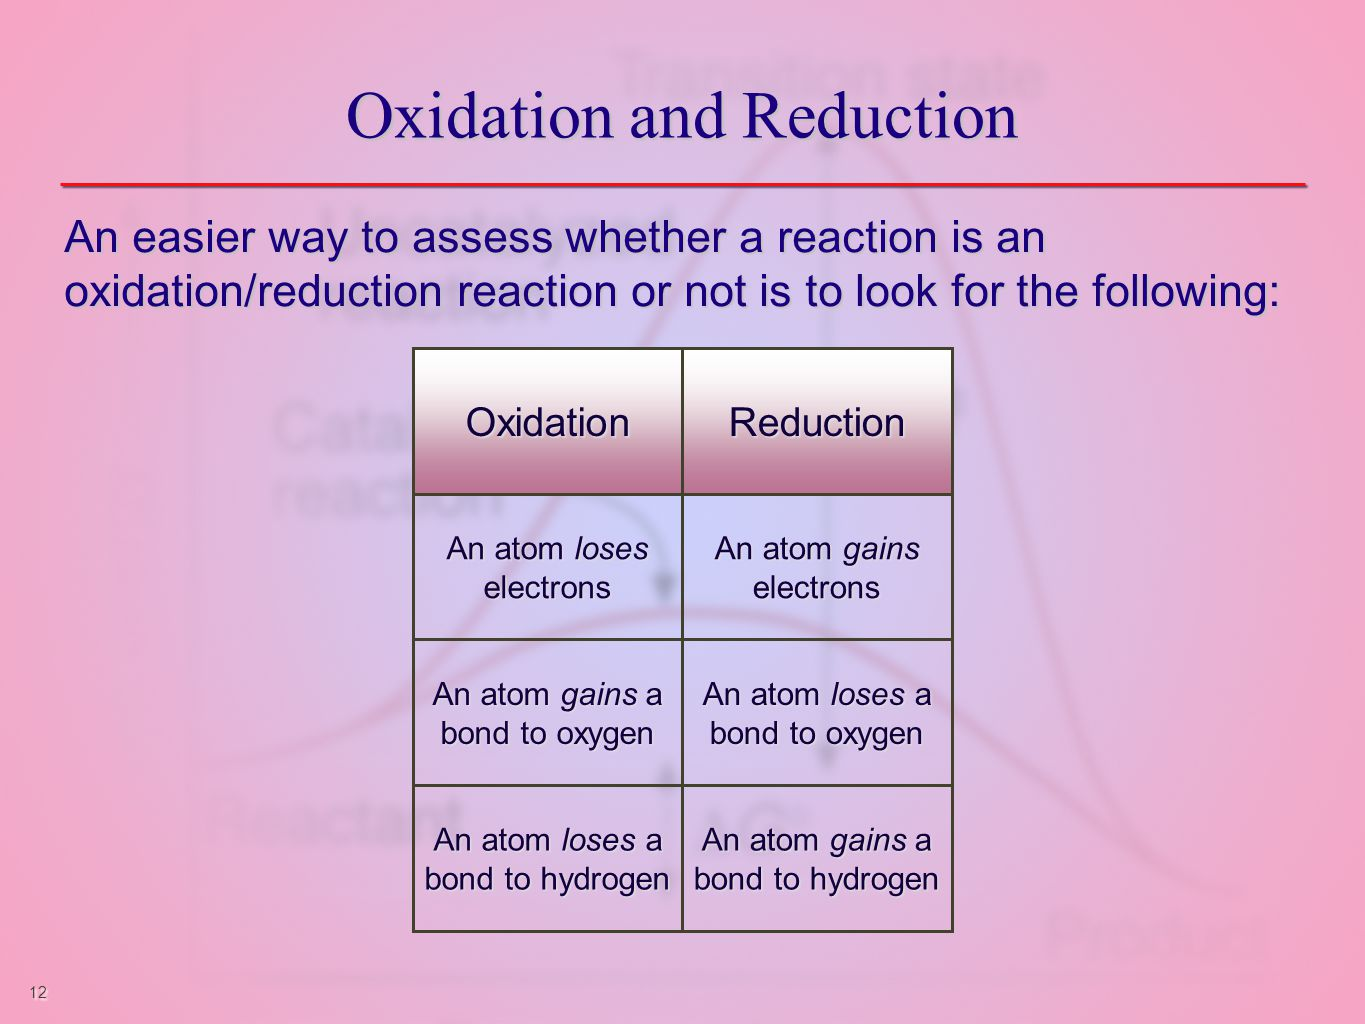 12 Oxidation and Reduction An easier way to assess whether a reaction is an oxidation/reduction reaction or not is to look for the following: OxidationReduction An atom loses electrons An atom gains electrons An atom gains a bond to oxygen An atom loses a bond to oxygen An atom loses a bond to hydrogen An atom gains a bond to hydrogen